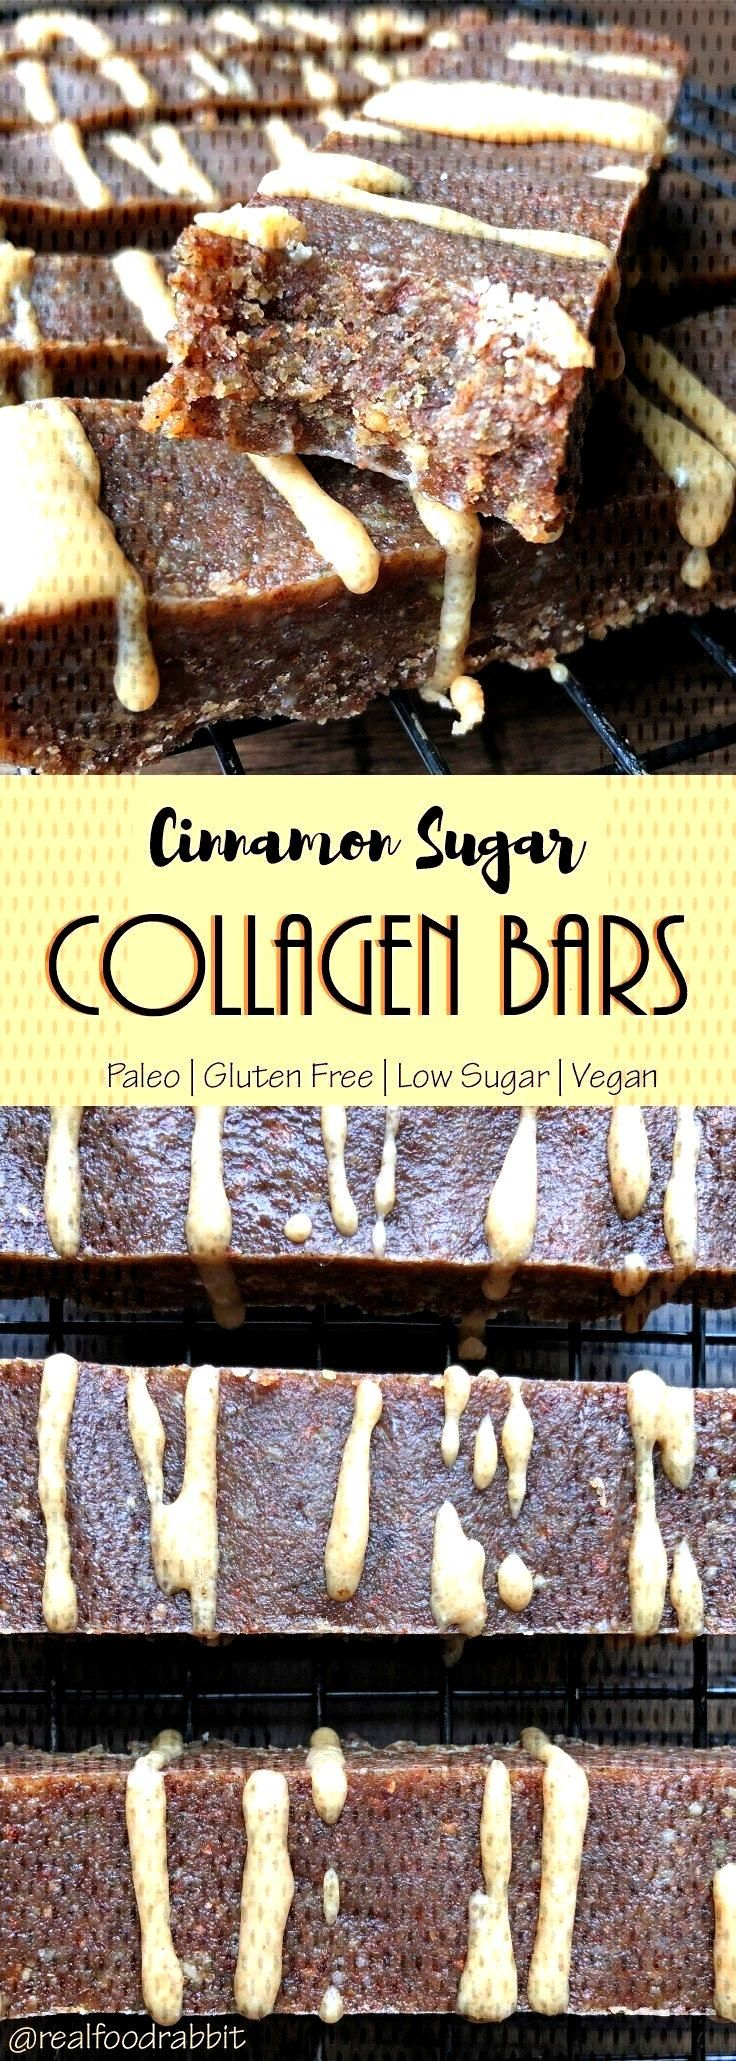 Cinnamon Sugar Collagen Bars | Paleo protein bars made with dry roasted almonds,... , Cinnamon Sug